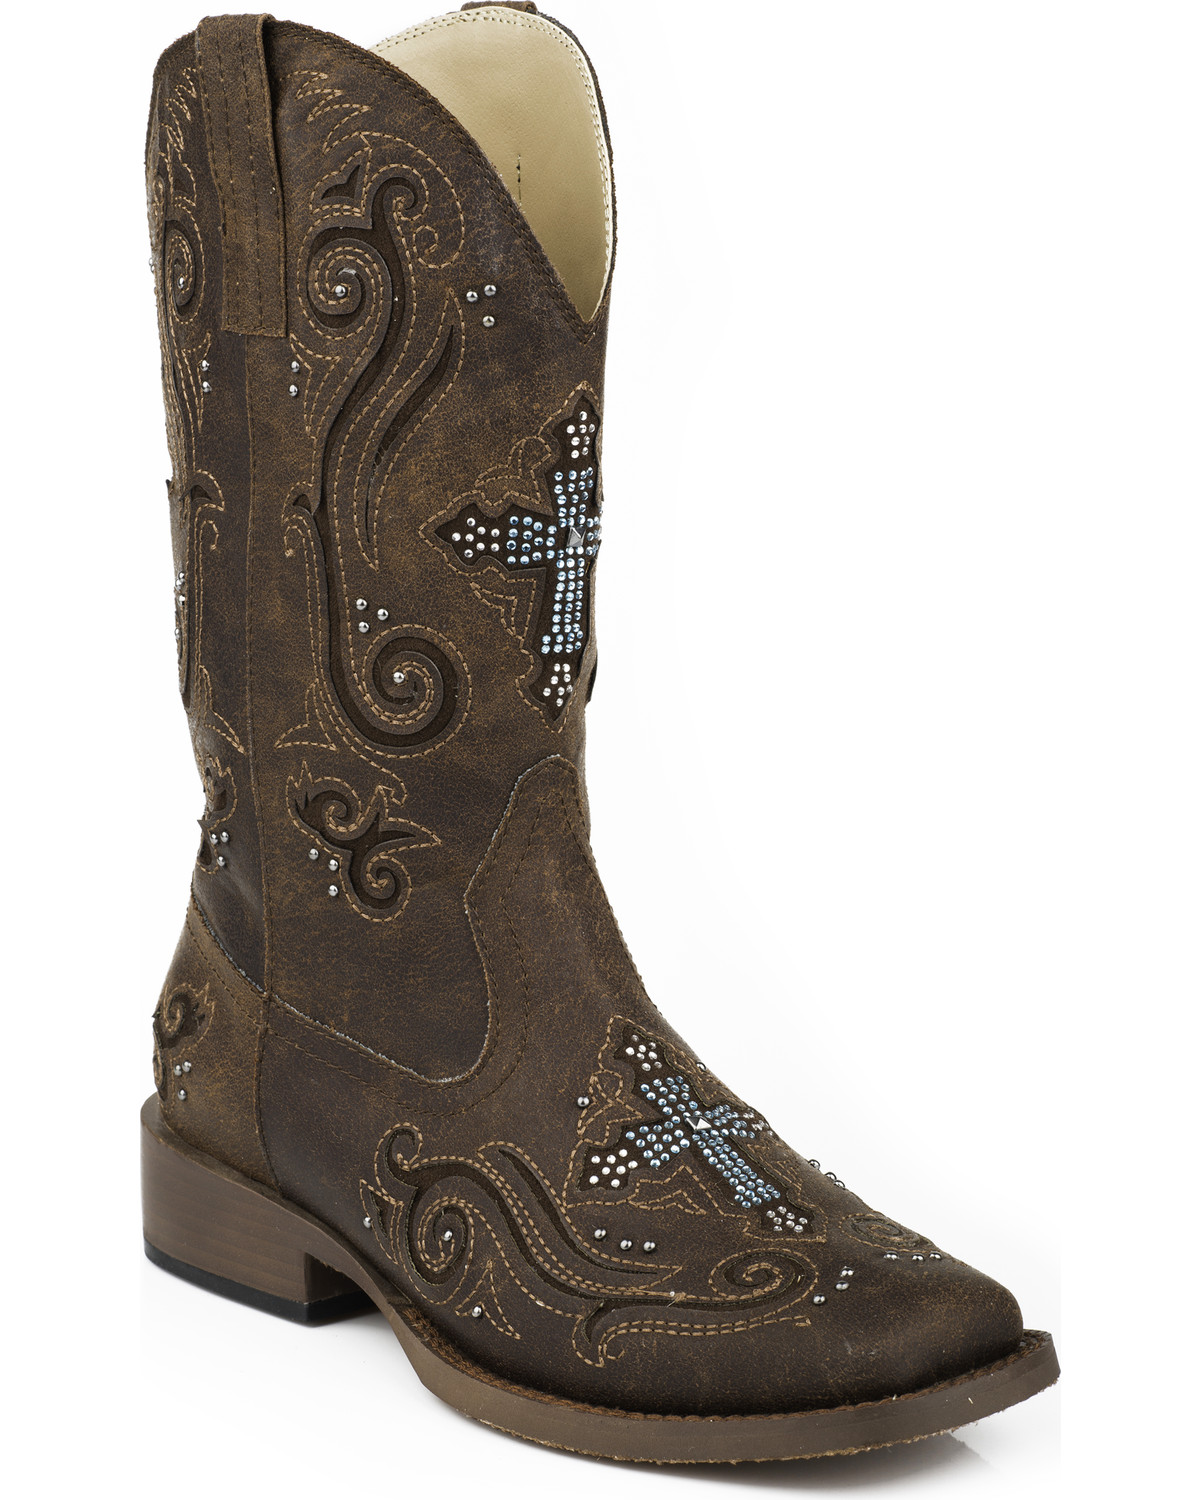 ab53081ef377 Roper Women s Bling Crystal Cross Faux Leather Western Boots